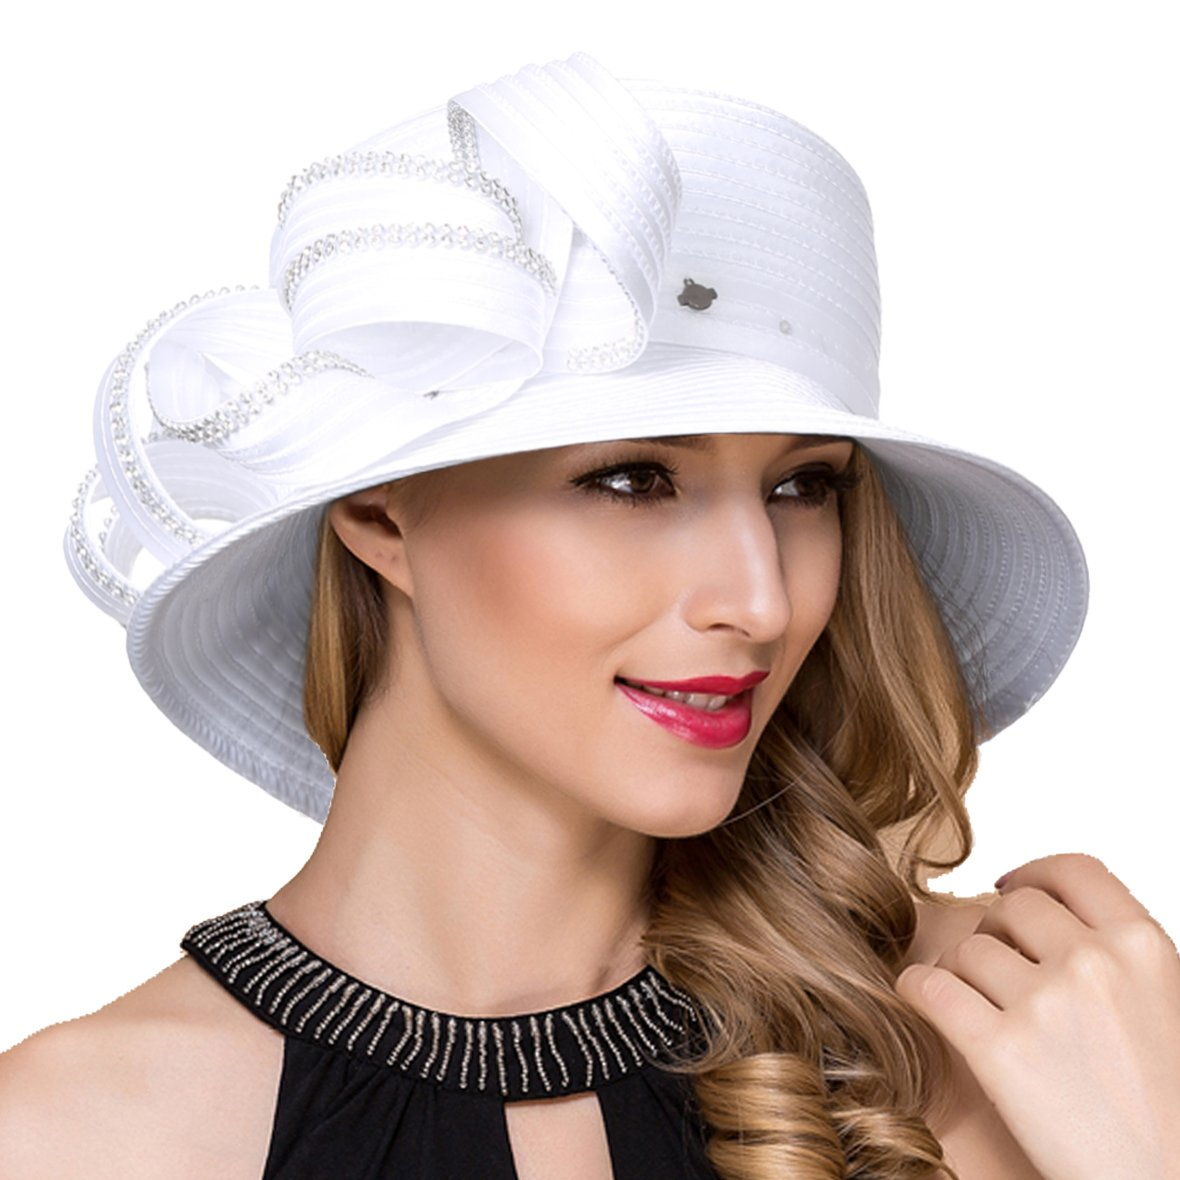 Lady Church Derby Dress Cloche Hat Fascinator Floral Tea Party Wedding Bucket Hat S051 (SD708-White) by Ruphedy